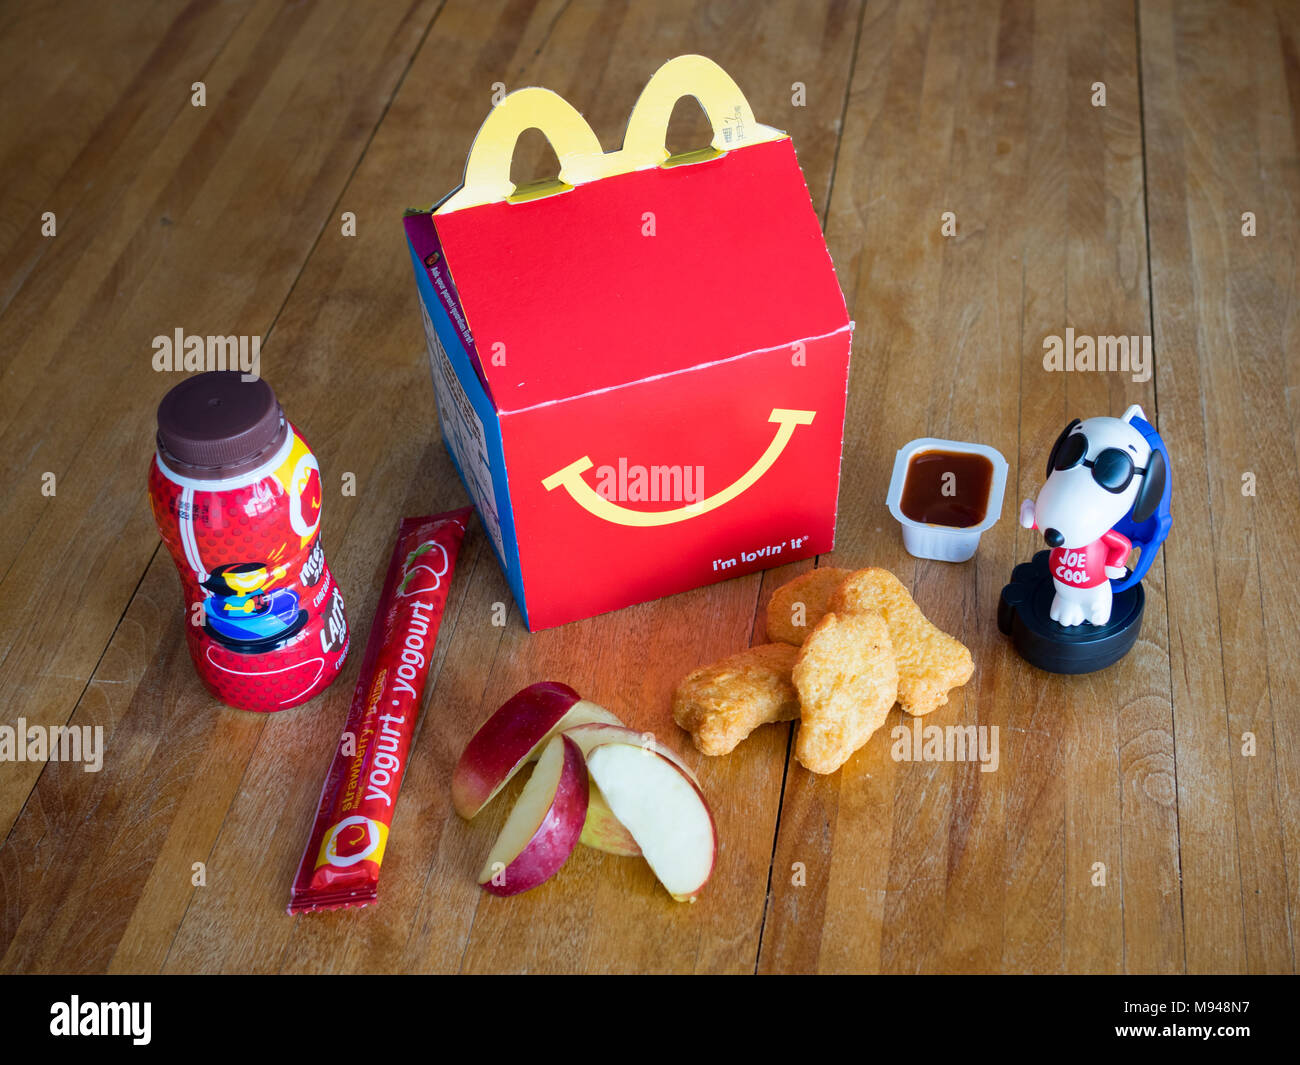 Mcdonalds Happy Meal Stock Photos & Mcdonalds Happy Meal ...